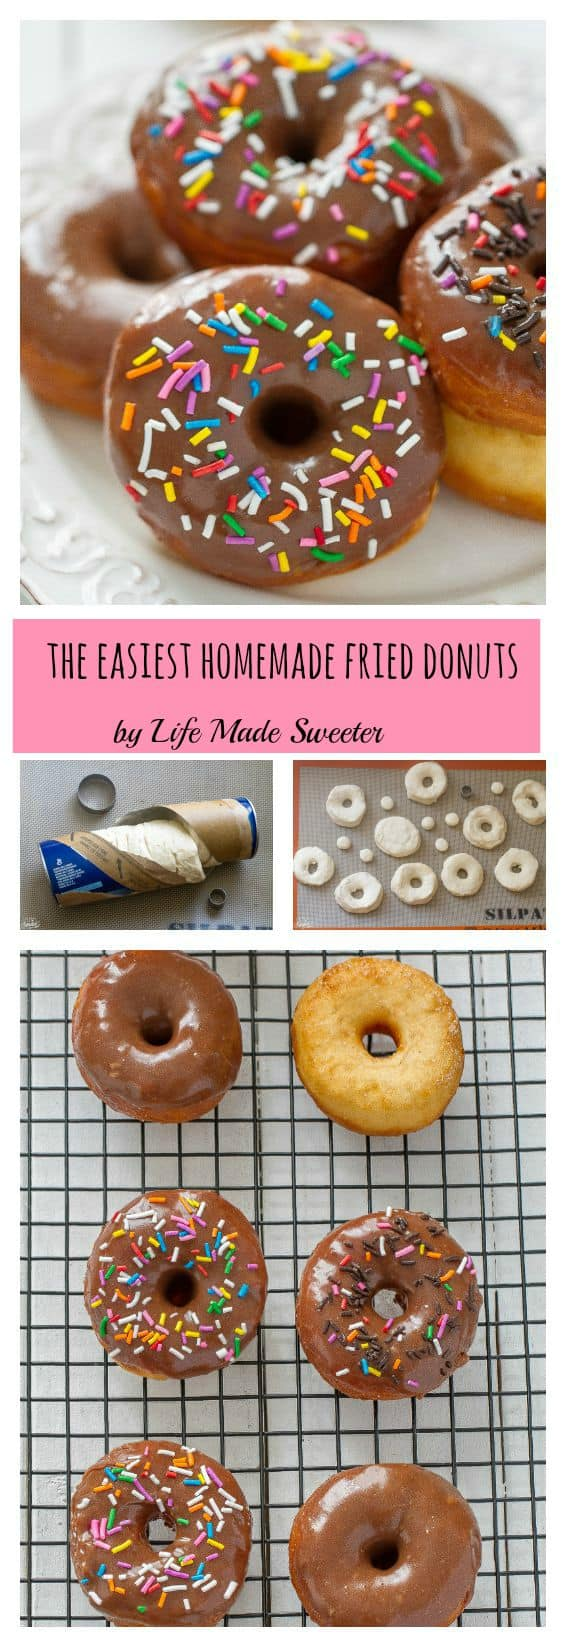 The Best and Easiest Homemade Fried Donuts come out perfectly soft & fluffy